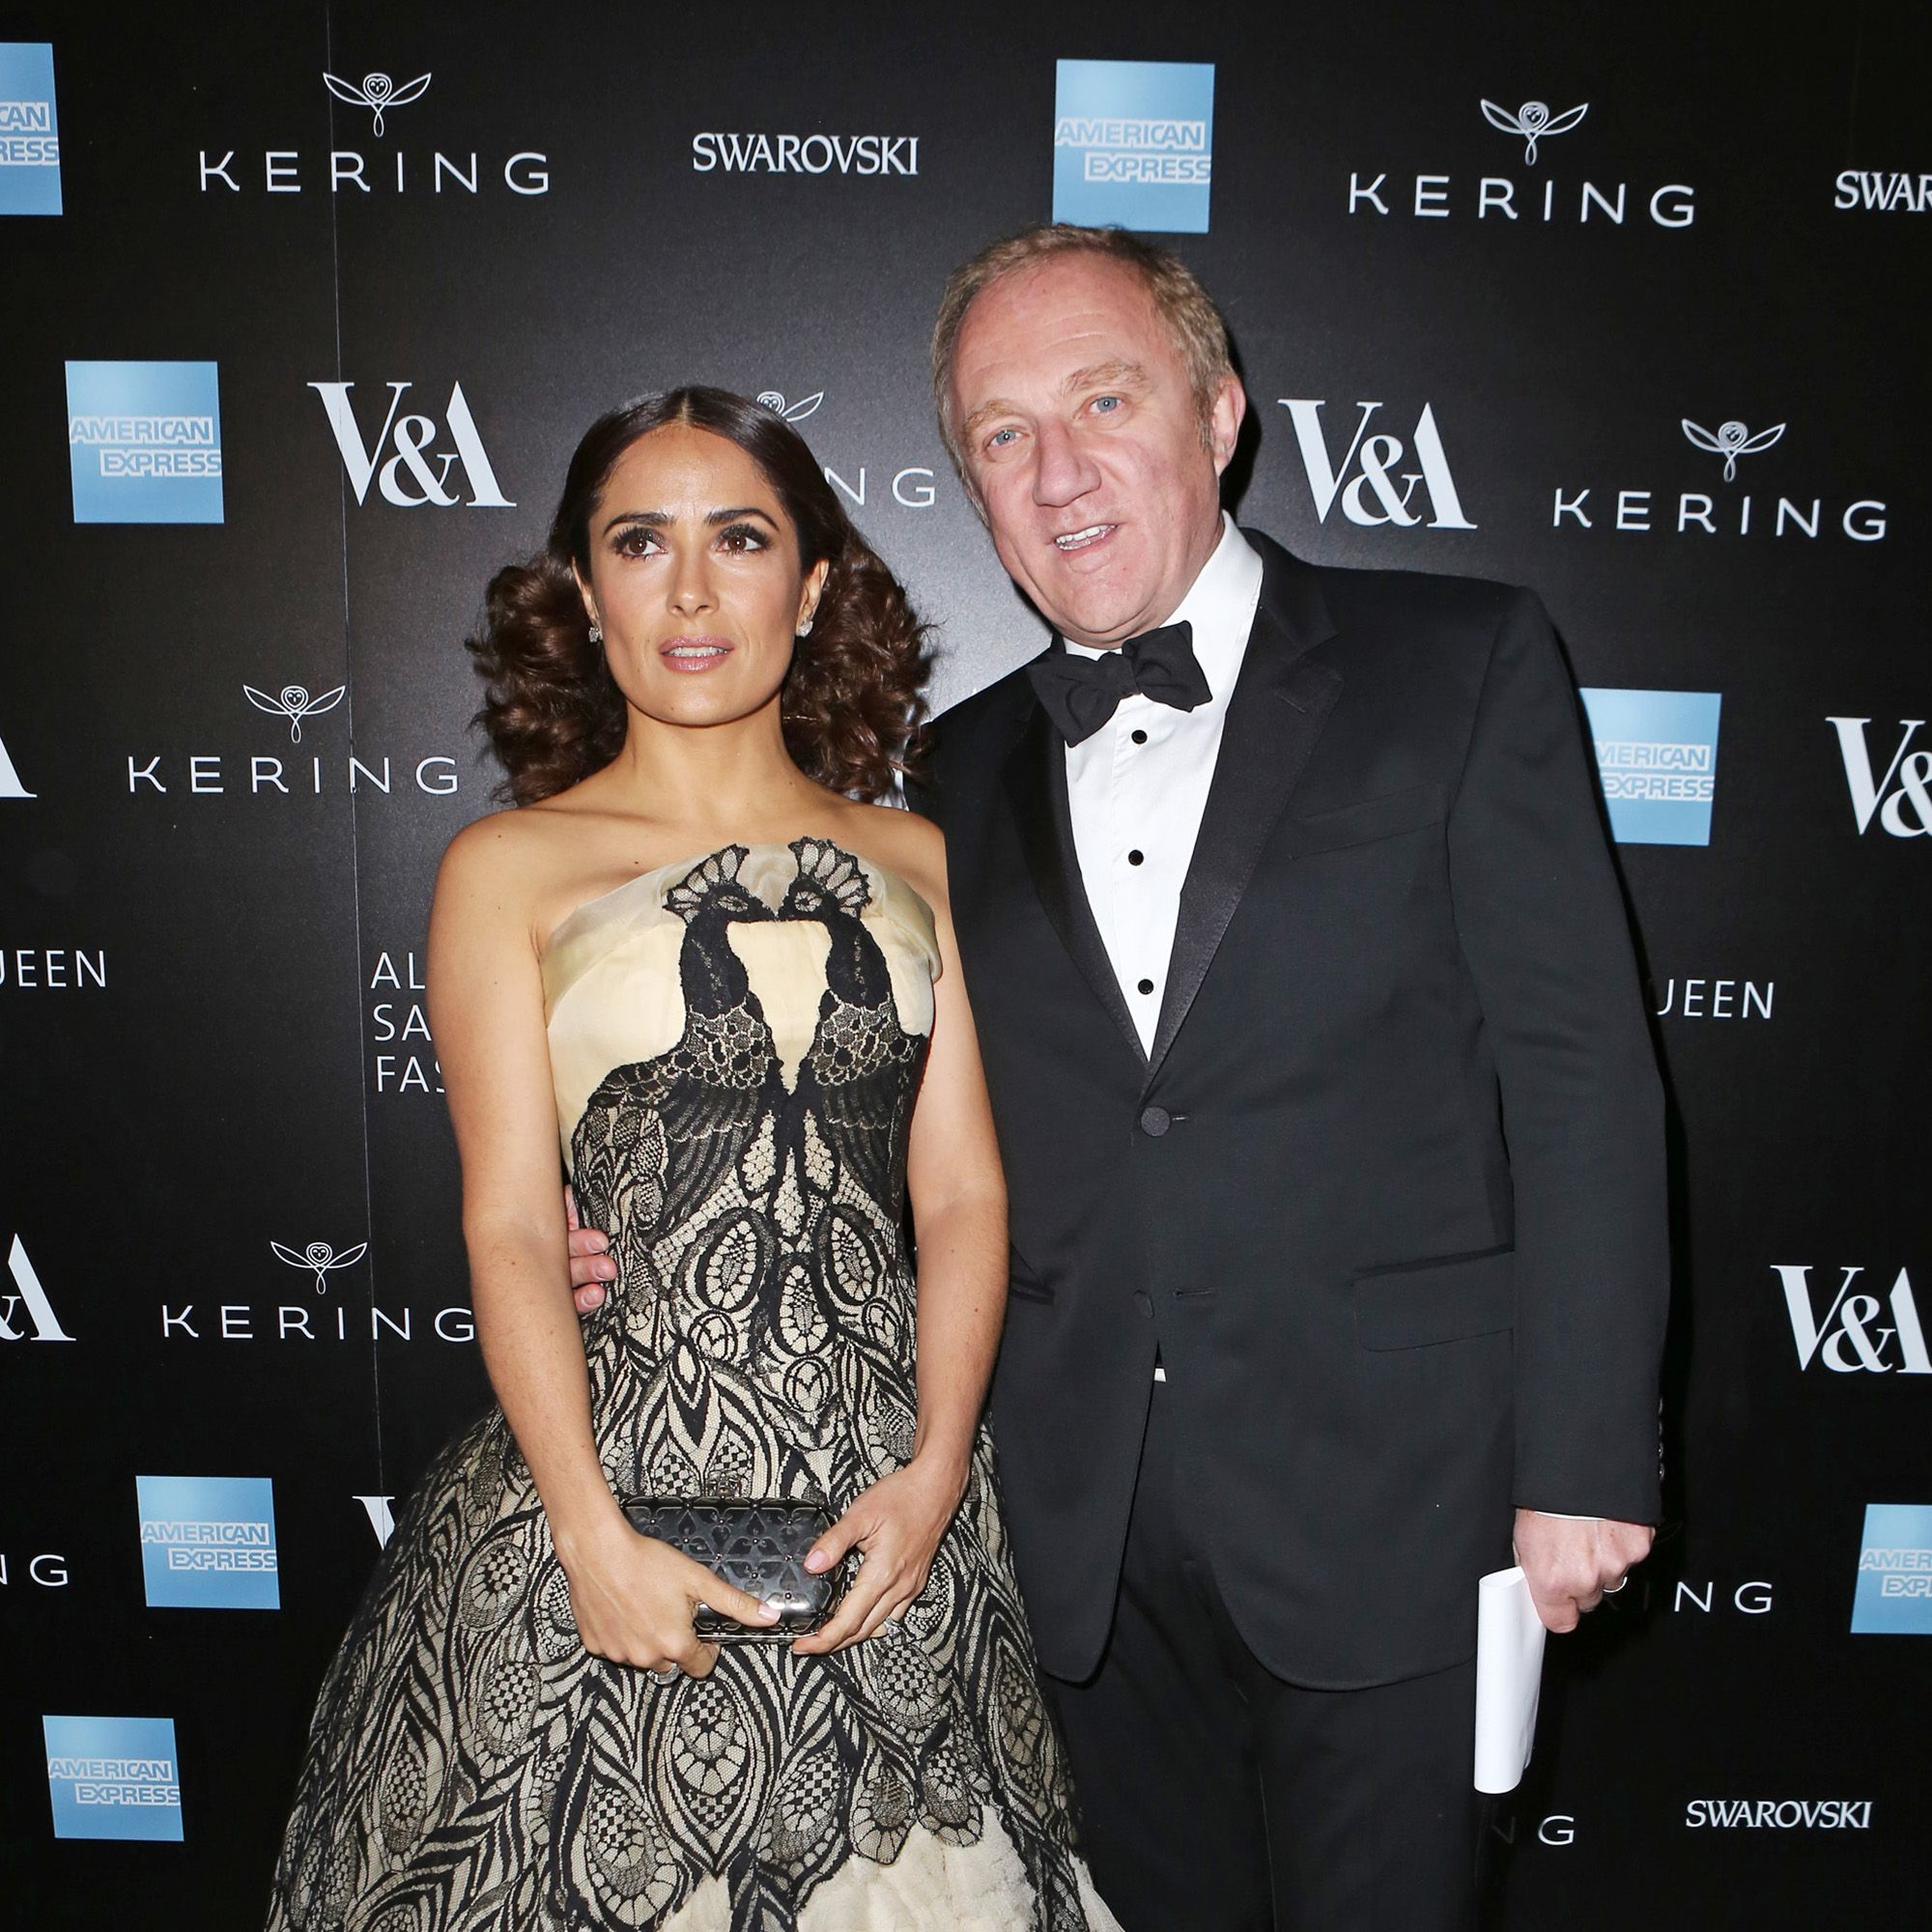 LONDON, ENGLAND - MARCH 12:  Salma Hayek (L) and Francois Henri Pinault arrive at the Alexander McQueen: Savage Beauty Fashion Gala at the V&amp&#x3B;A, presented by American Express and Kering on March 12, 2015 in London, England.  (Photo by David M. Benett/Getty Images for Victoria and Albert Museum)